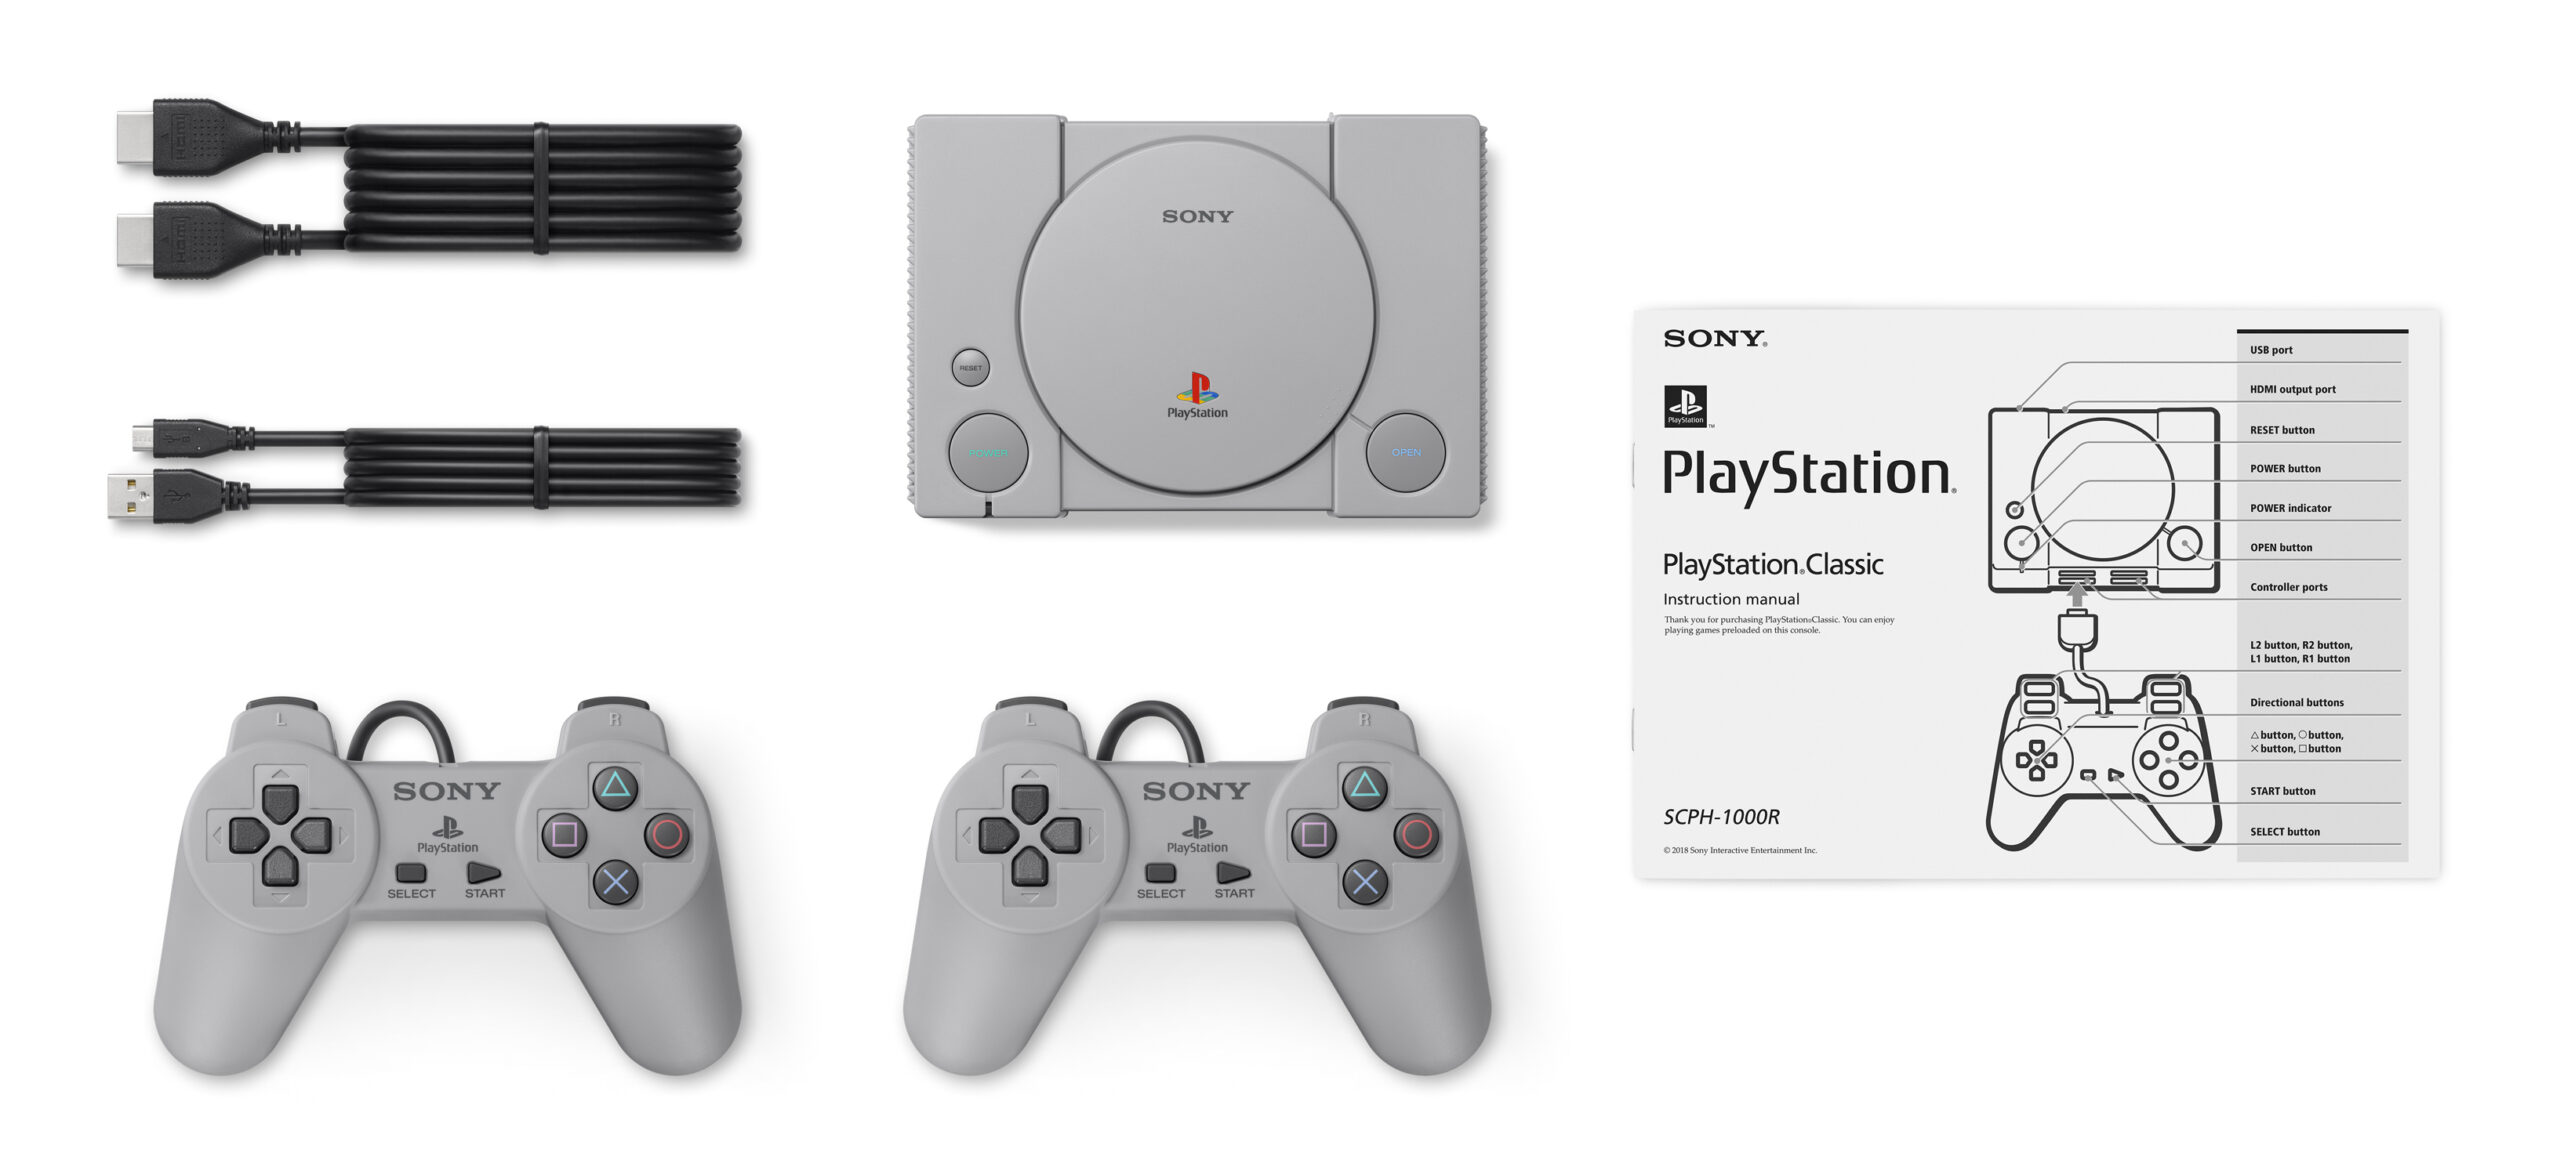 PlayStation-Classic_2018_09-19-18_003